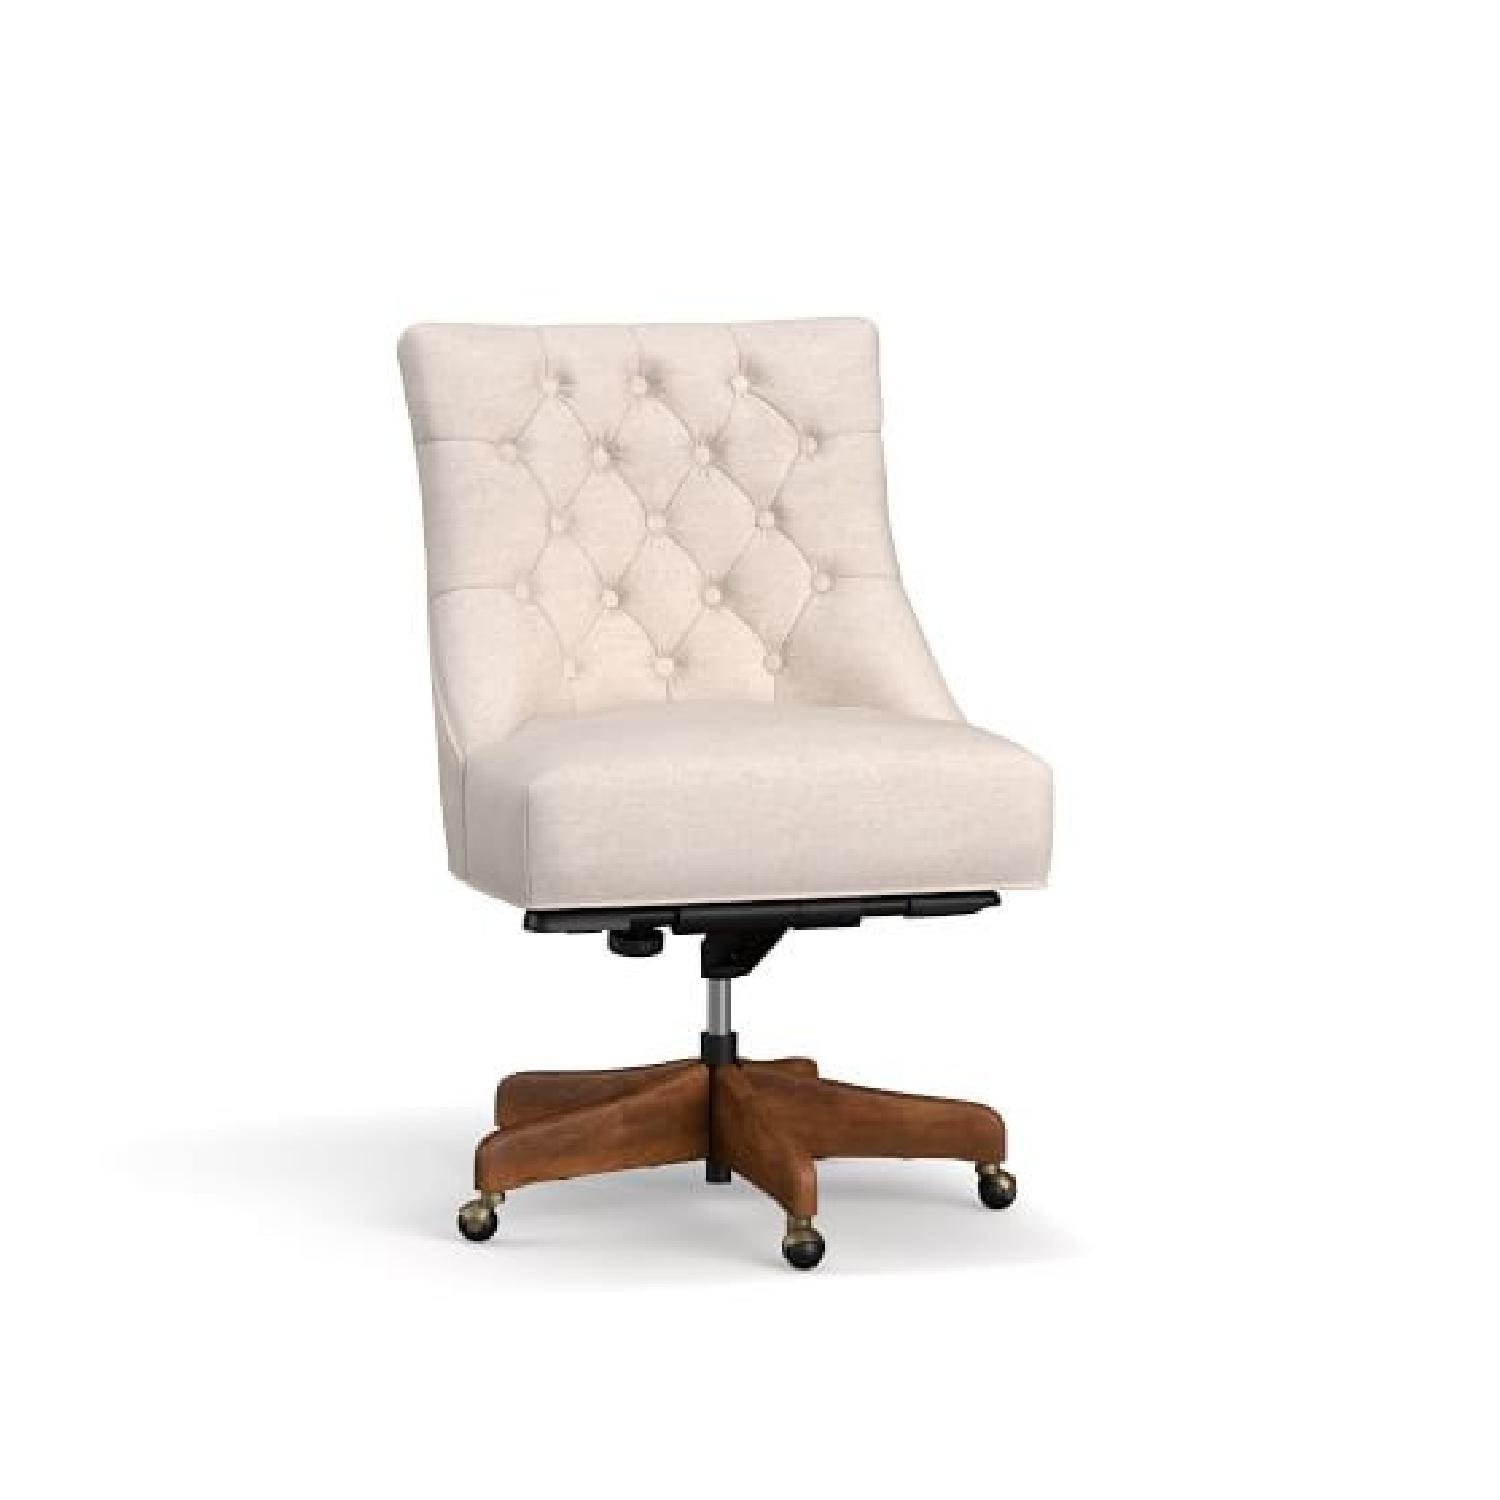 Pottery Barn Hayes Tufted Swivel Desk Chair